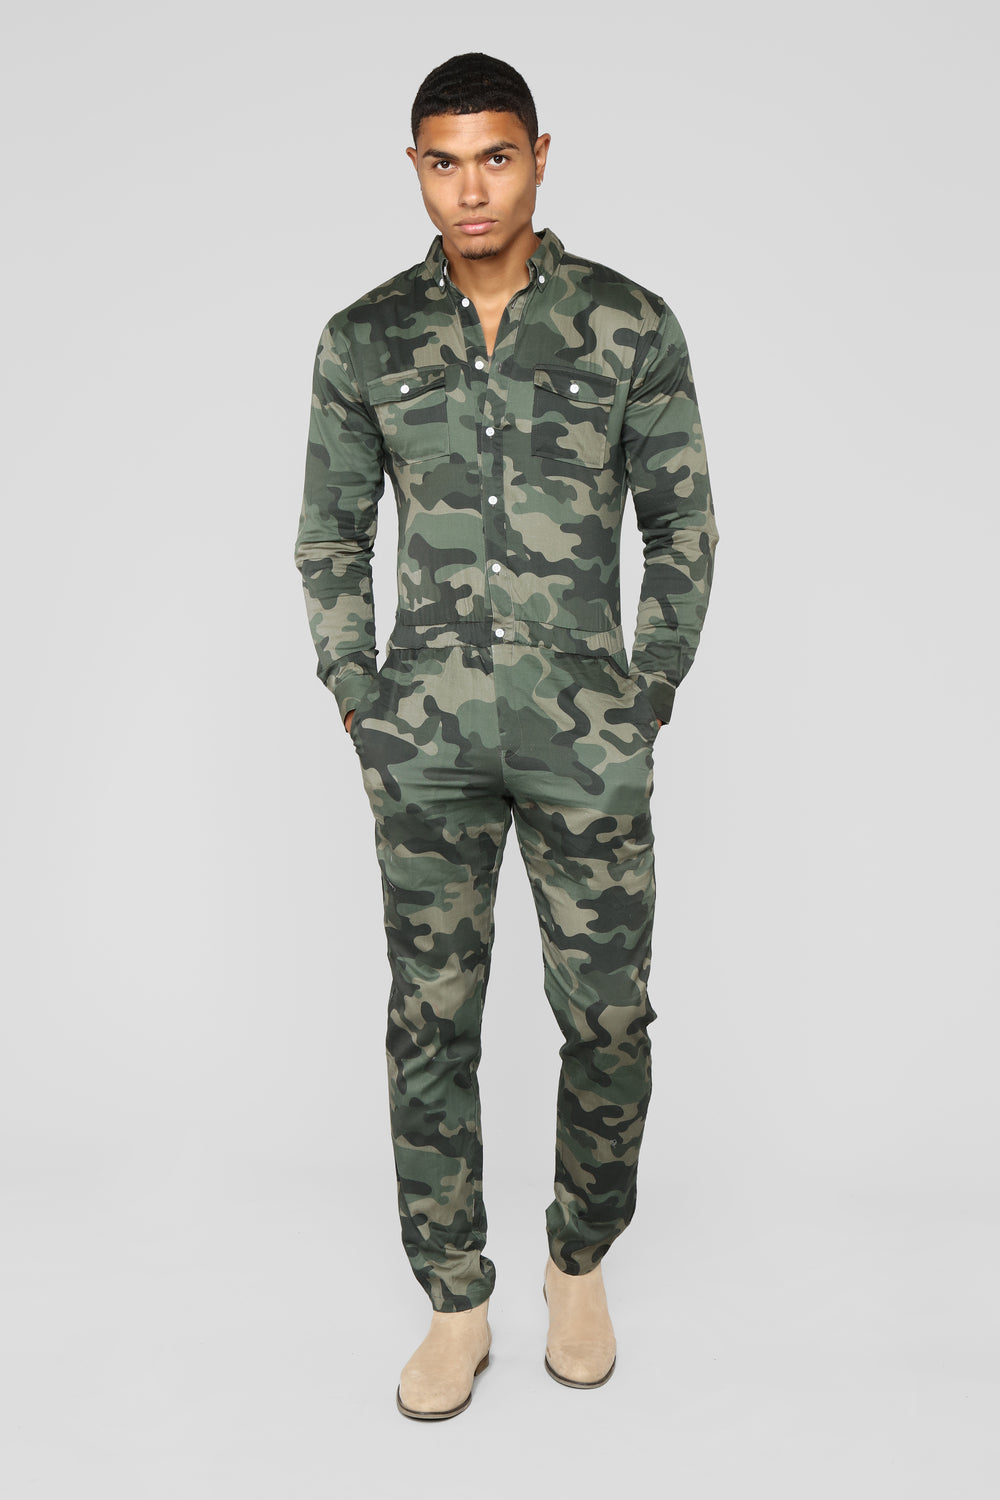 Daily Driver's Suit - Camo